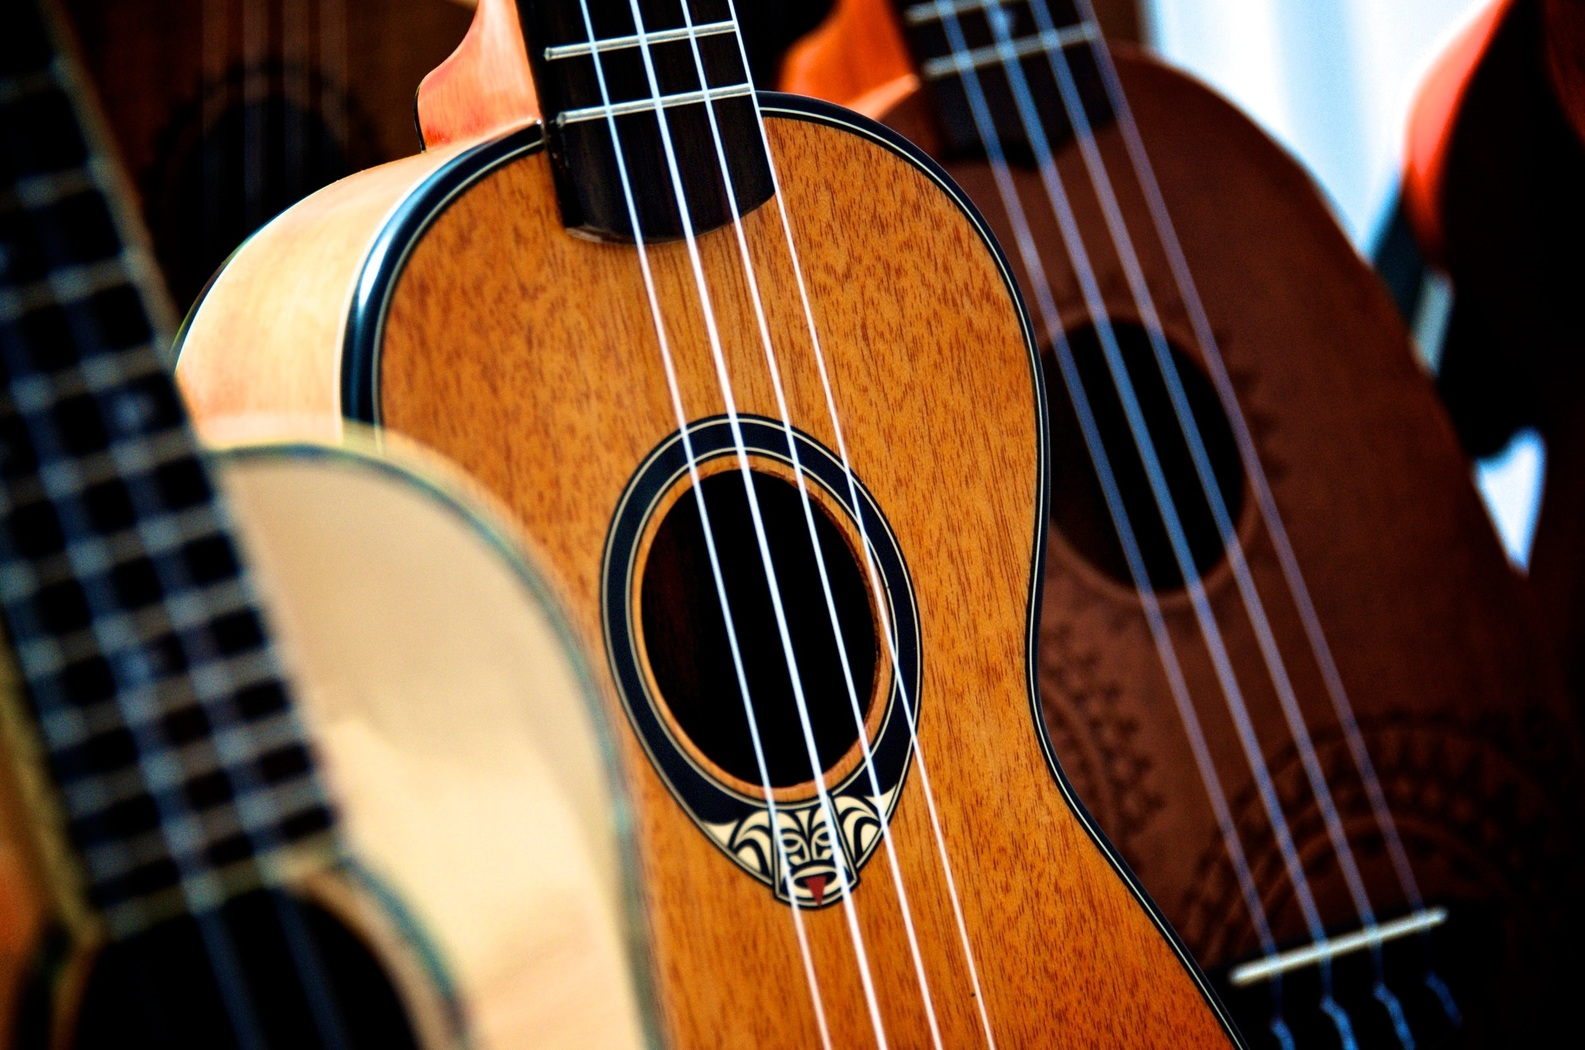 Ukelele For Your Trip